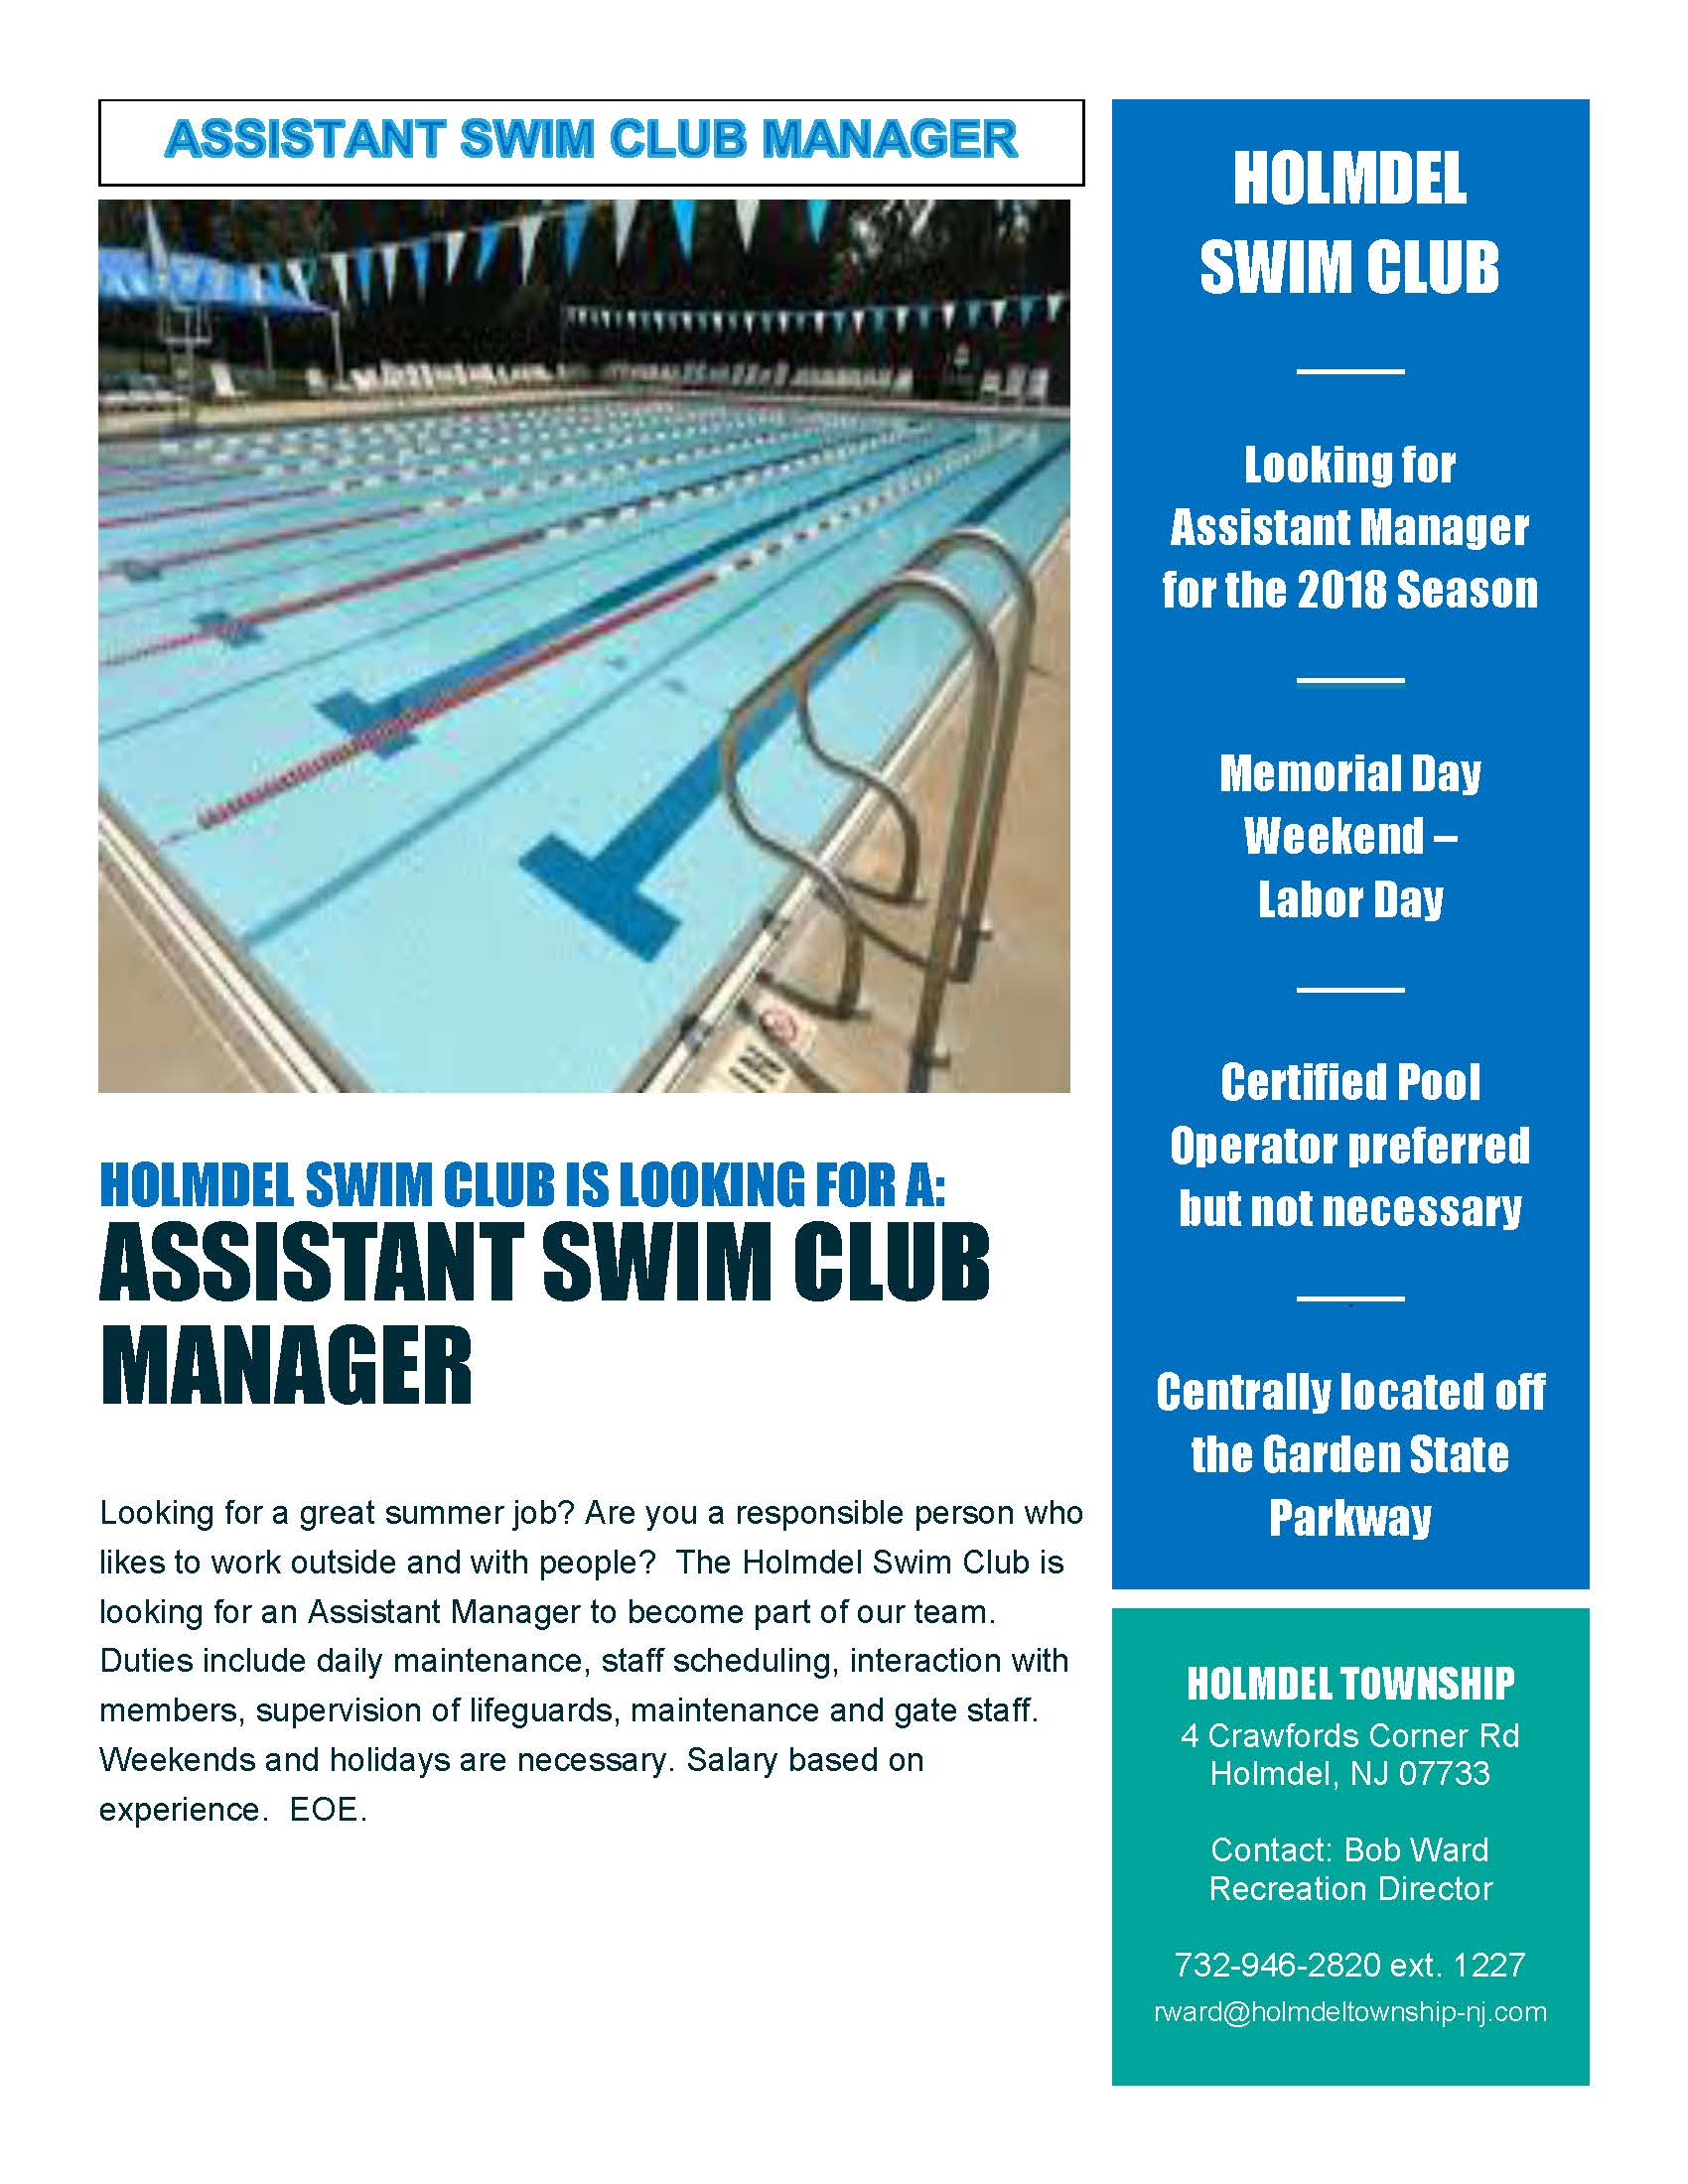 Assistant Swim Club Manager Want Ad 2019